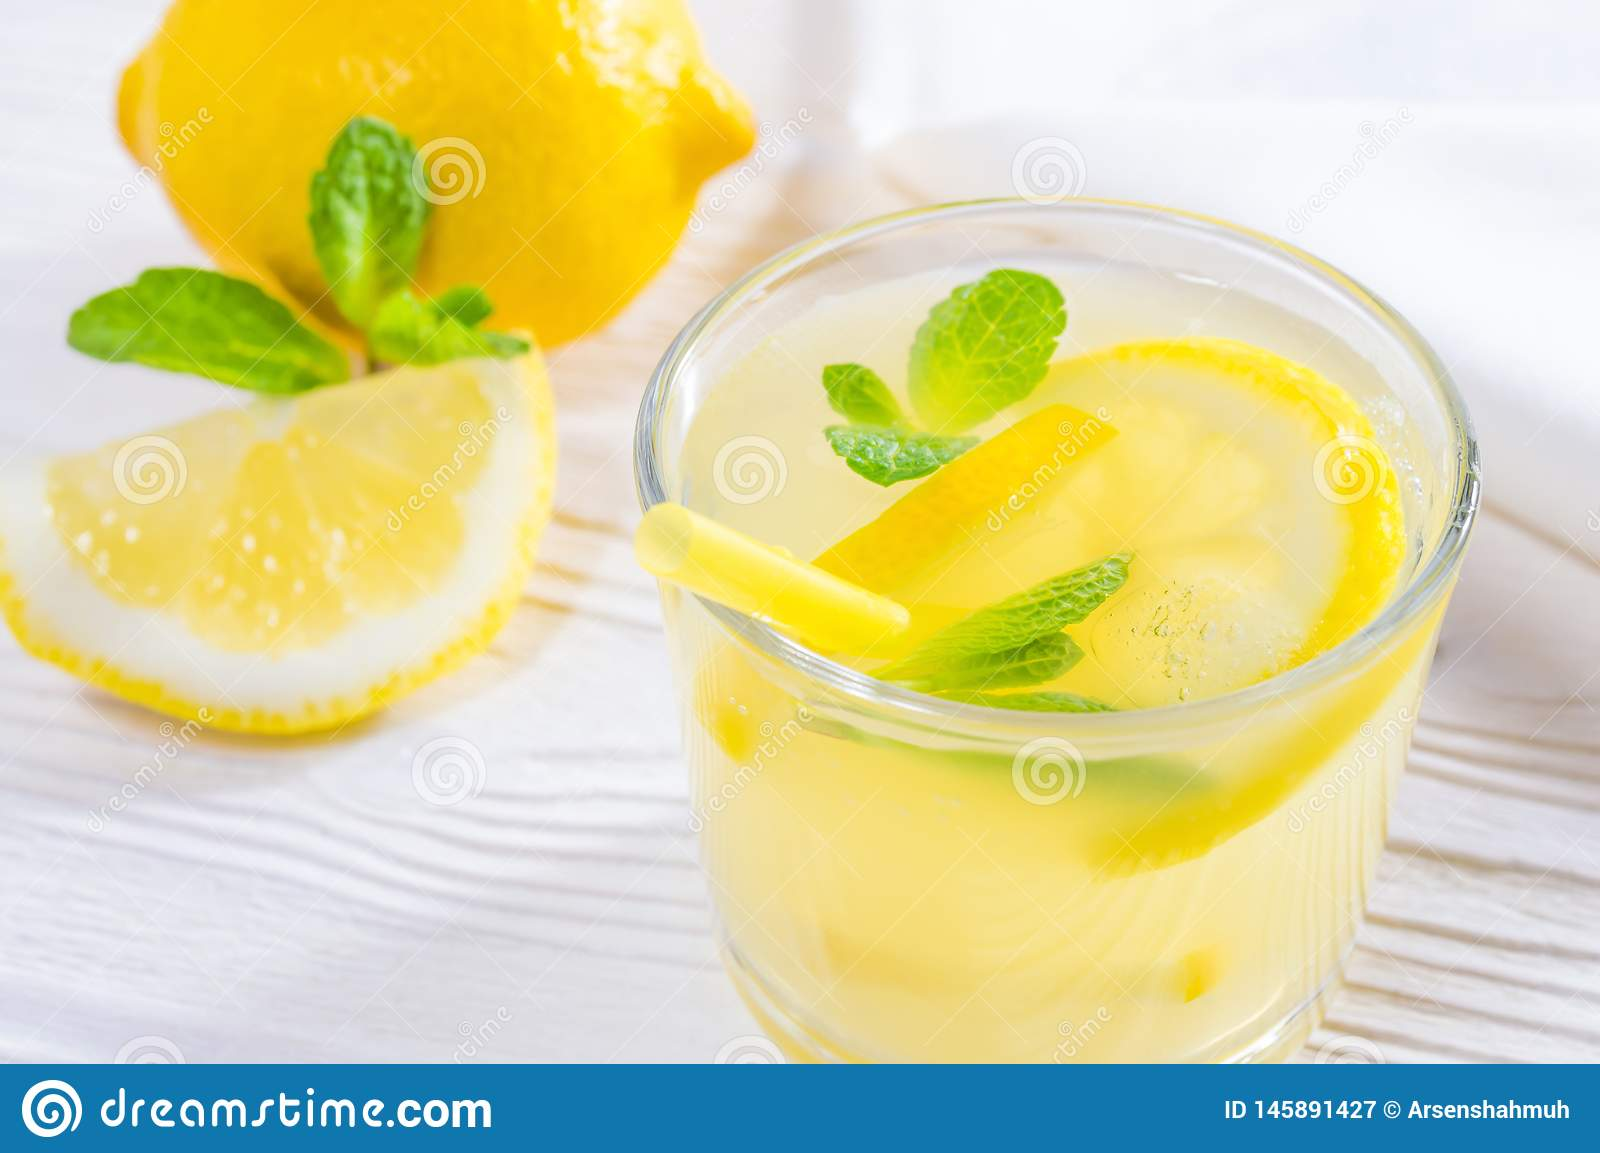 Summer drink of lemon and mint, or lemonade on white wooden table. Glass with summer drink of lemon and mint, or lemonade, on a white wooden table, decorated royalty free stock photography